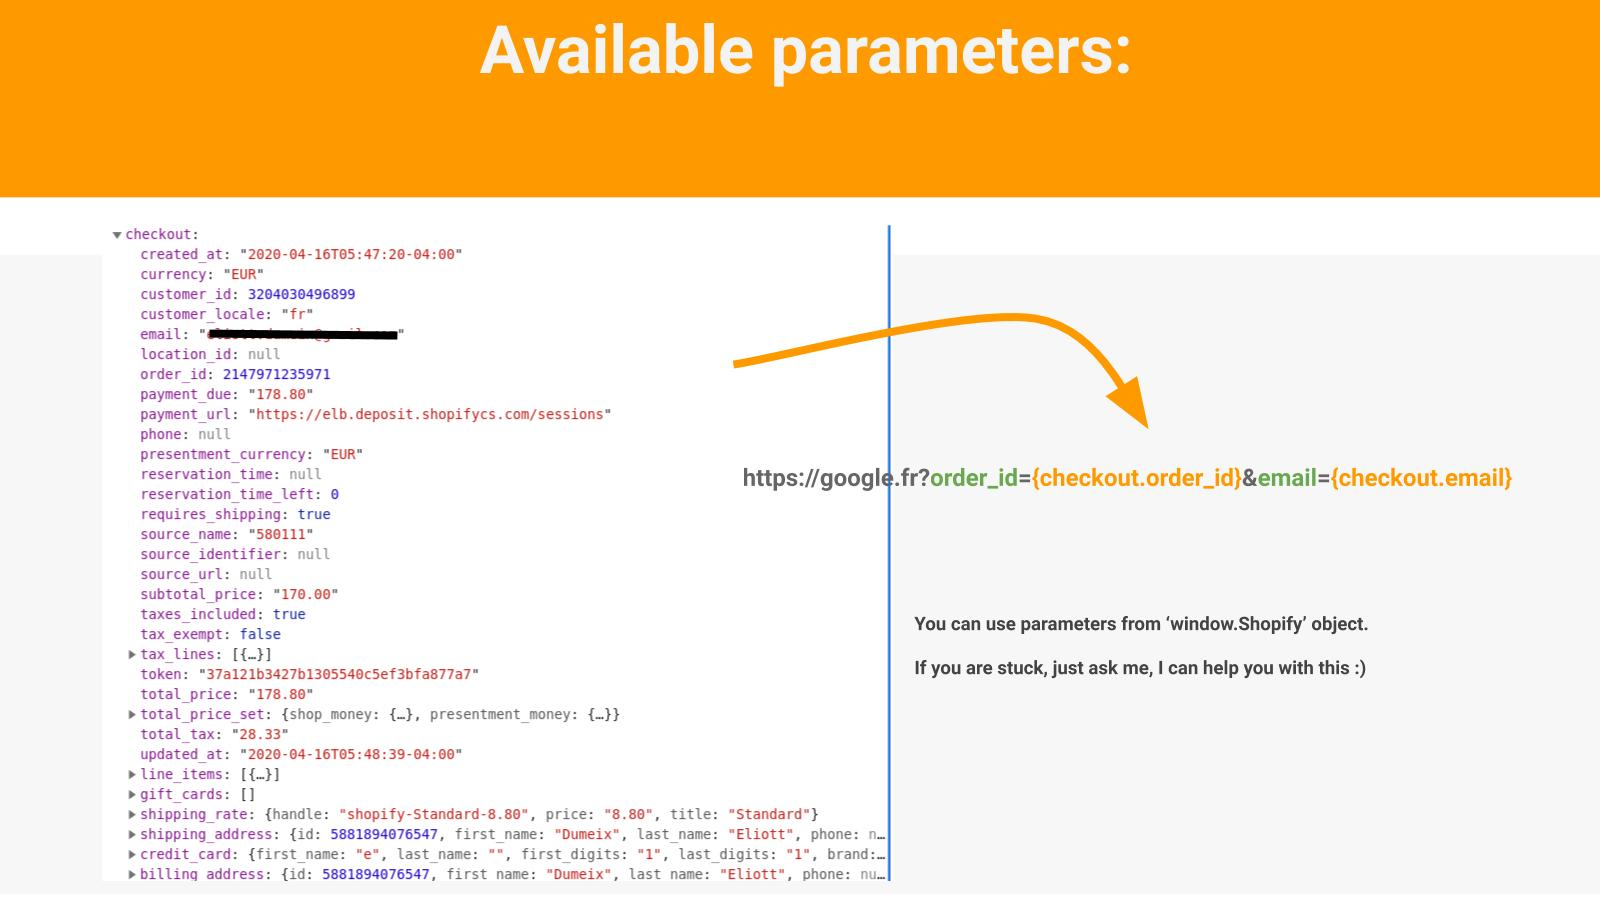 Available parameters